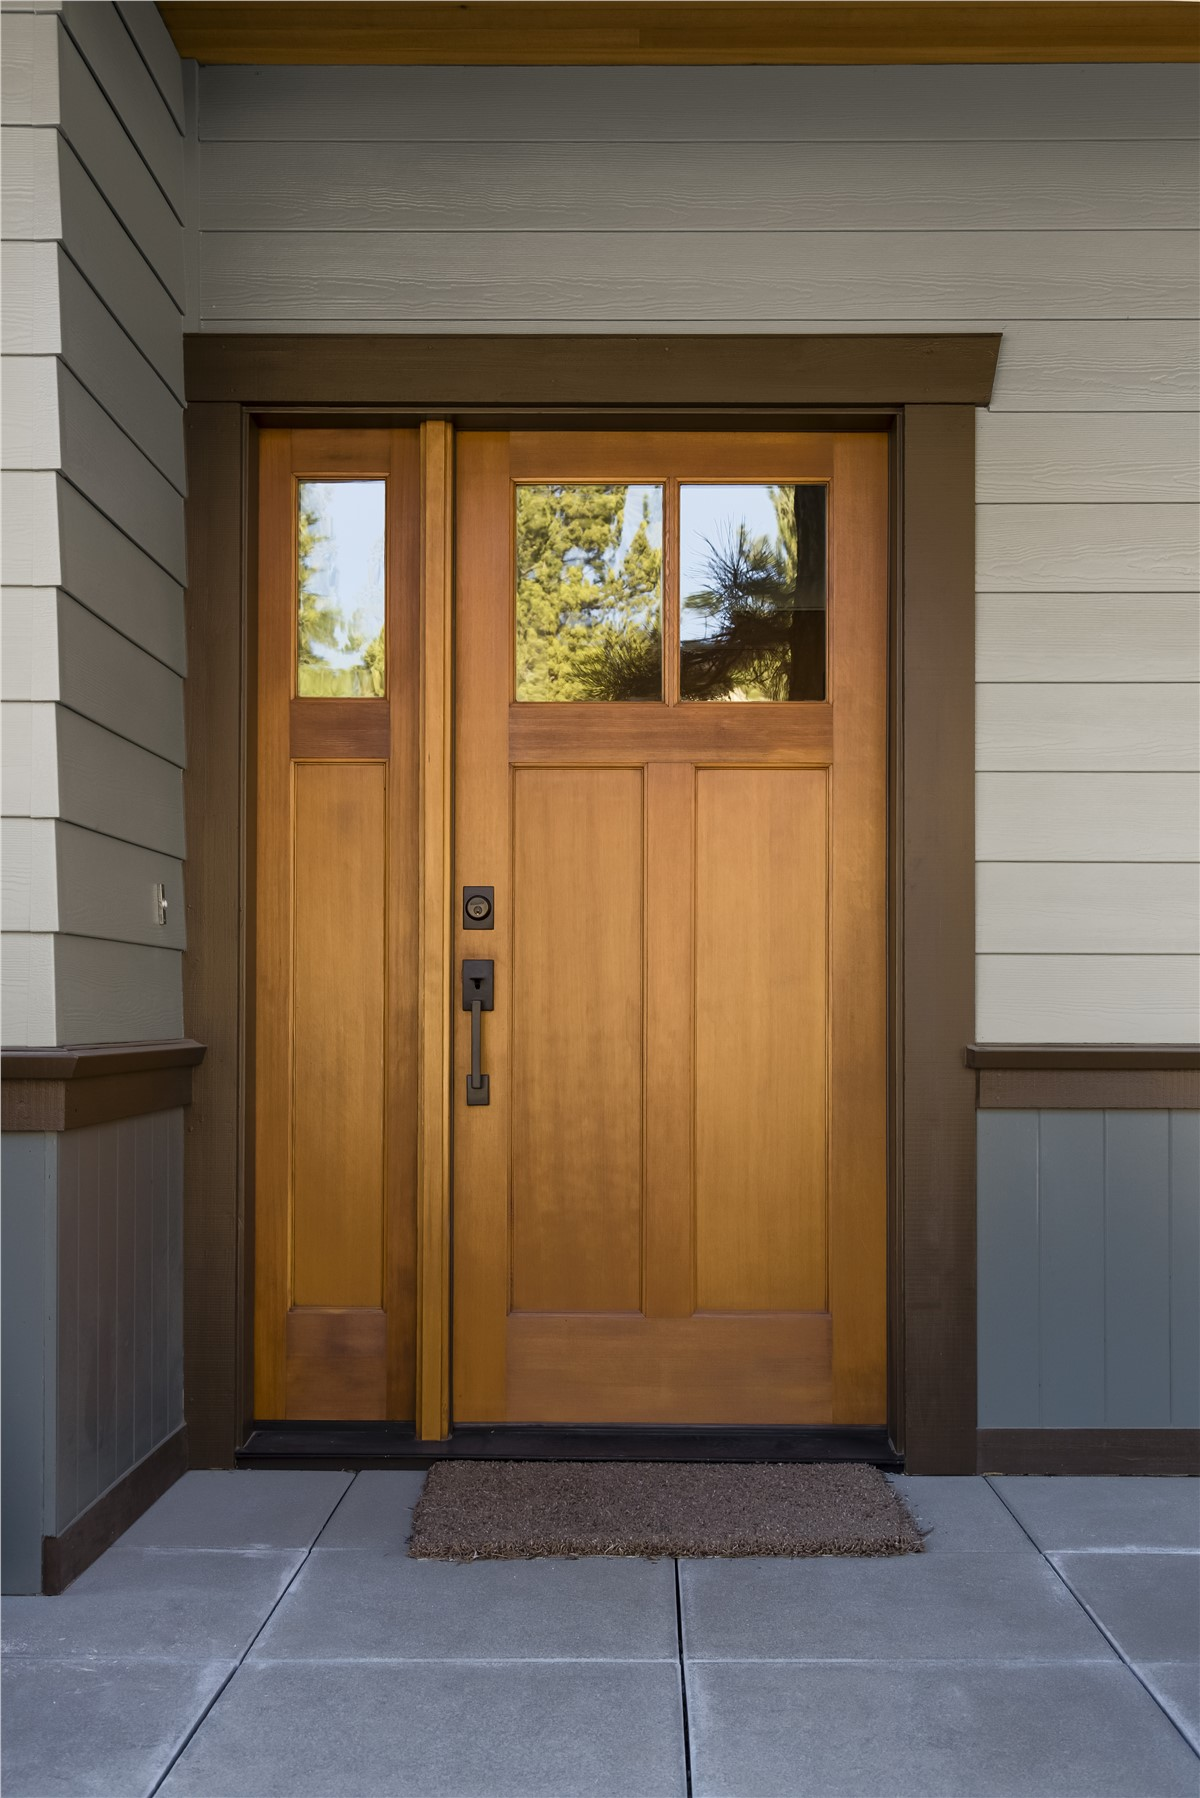 Fiberglass Entry Doors Chicago | Fiberglass Door Chicago | My ...